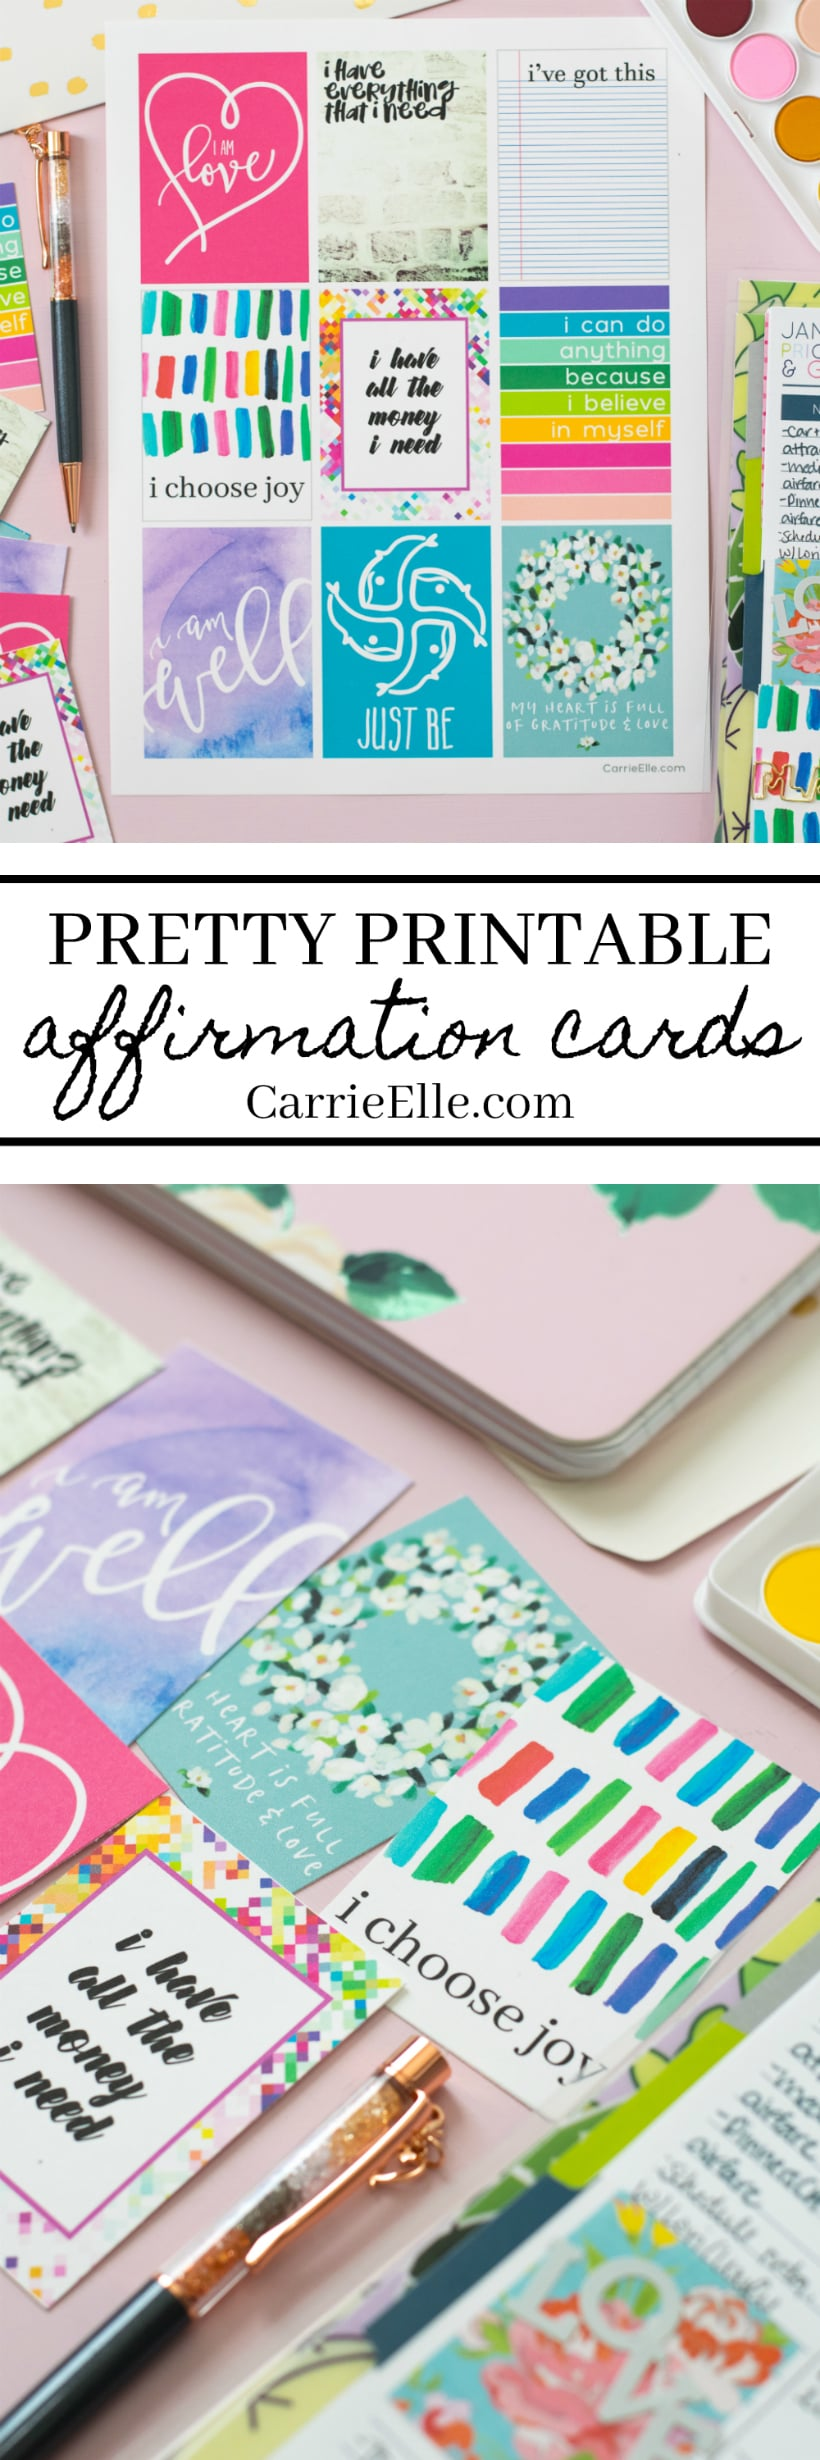 Printable Affirmation Cards